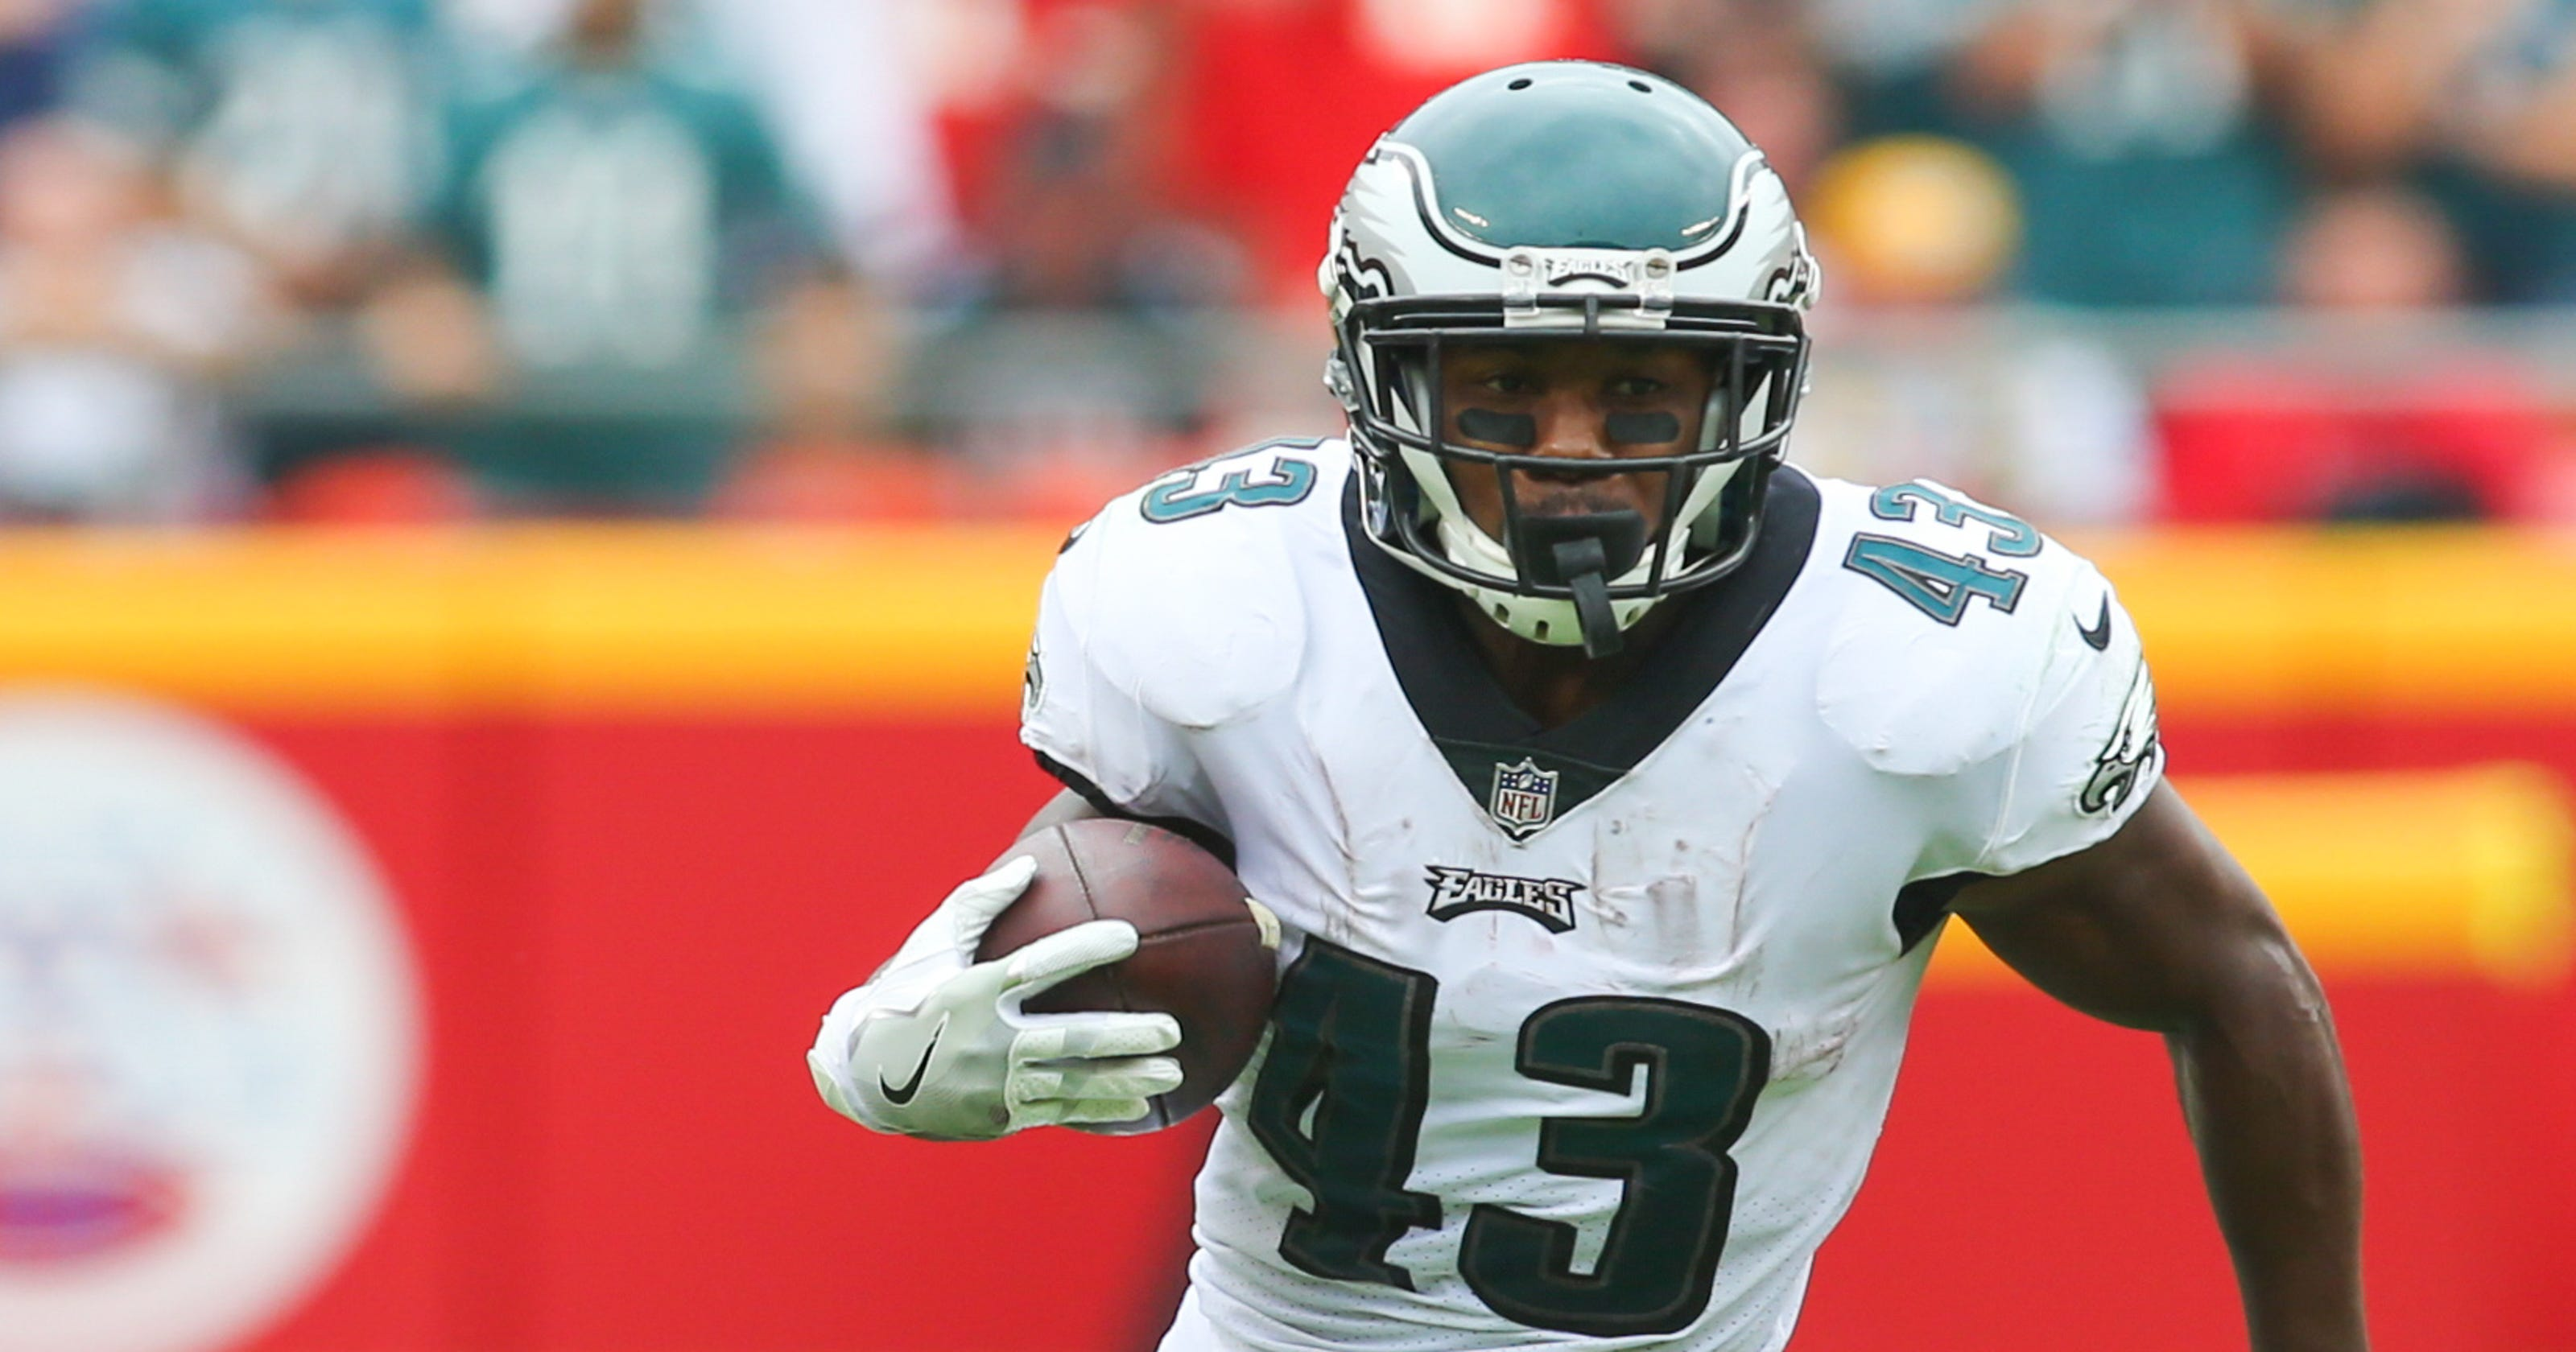 low priced 1aa45 d1b63 Darren Sproles to retire from NFL after 2018 season